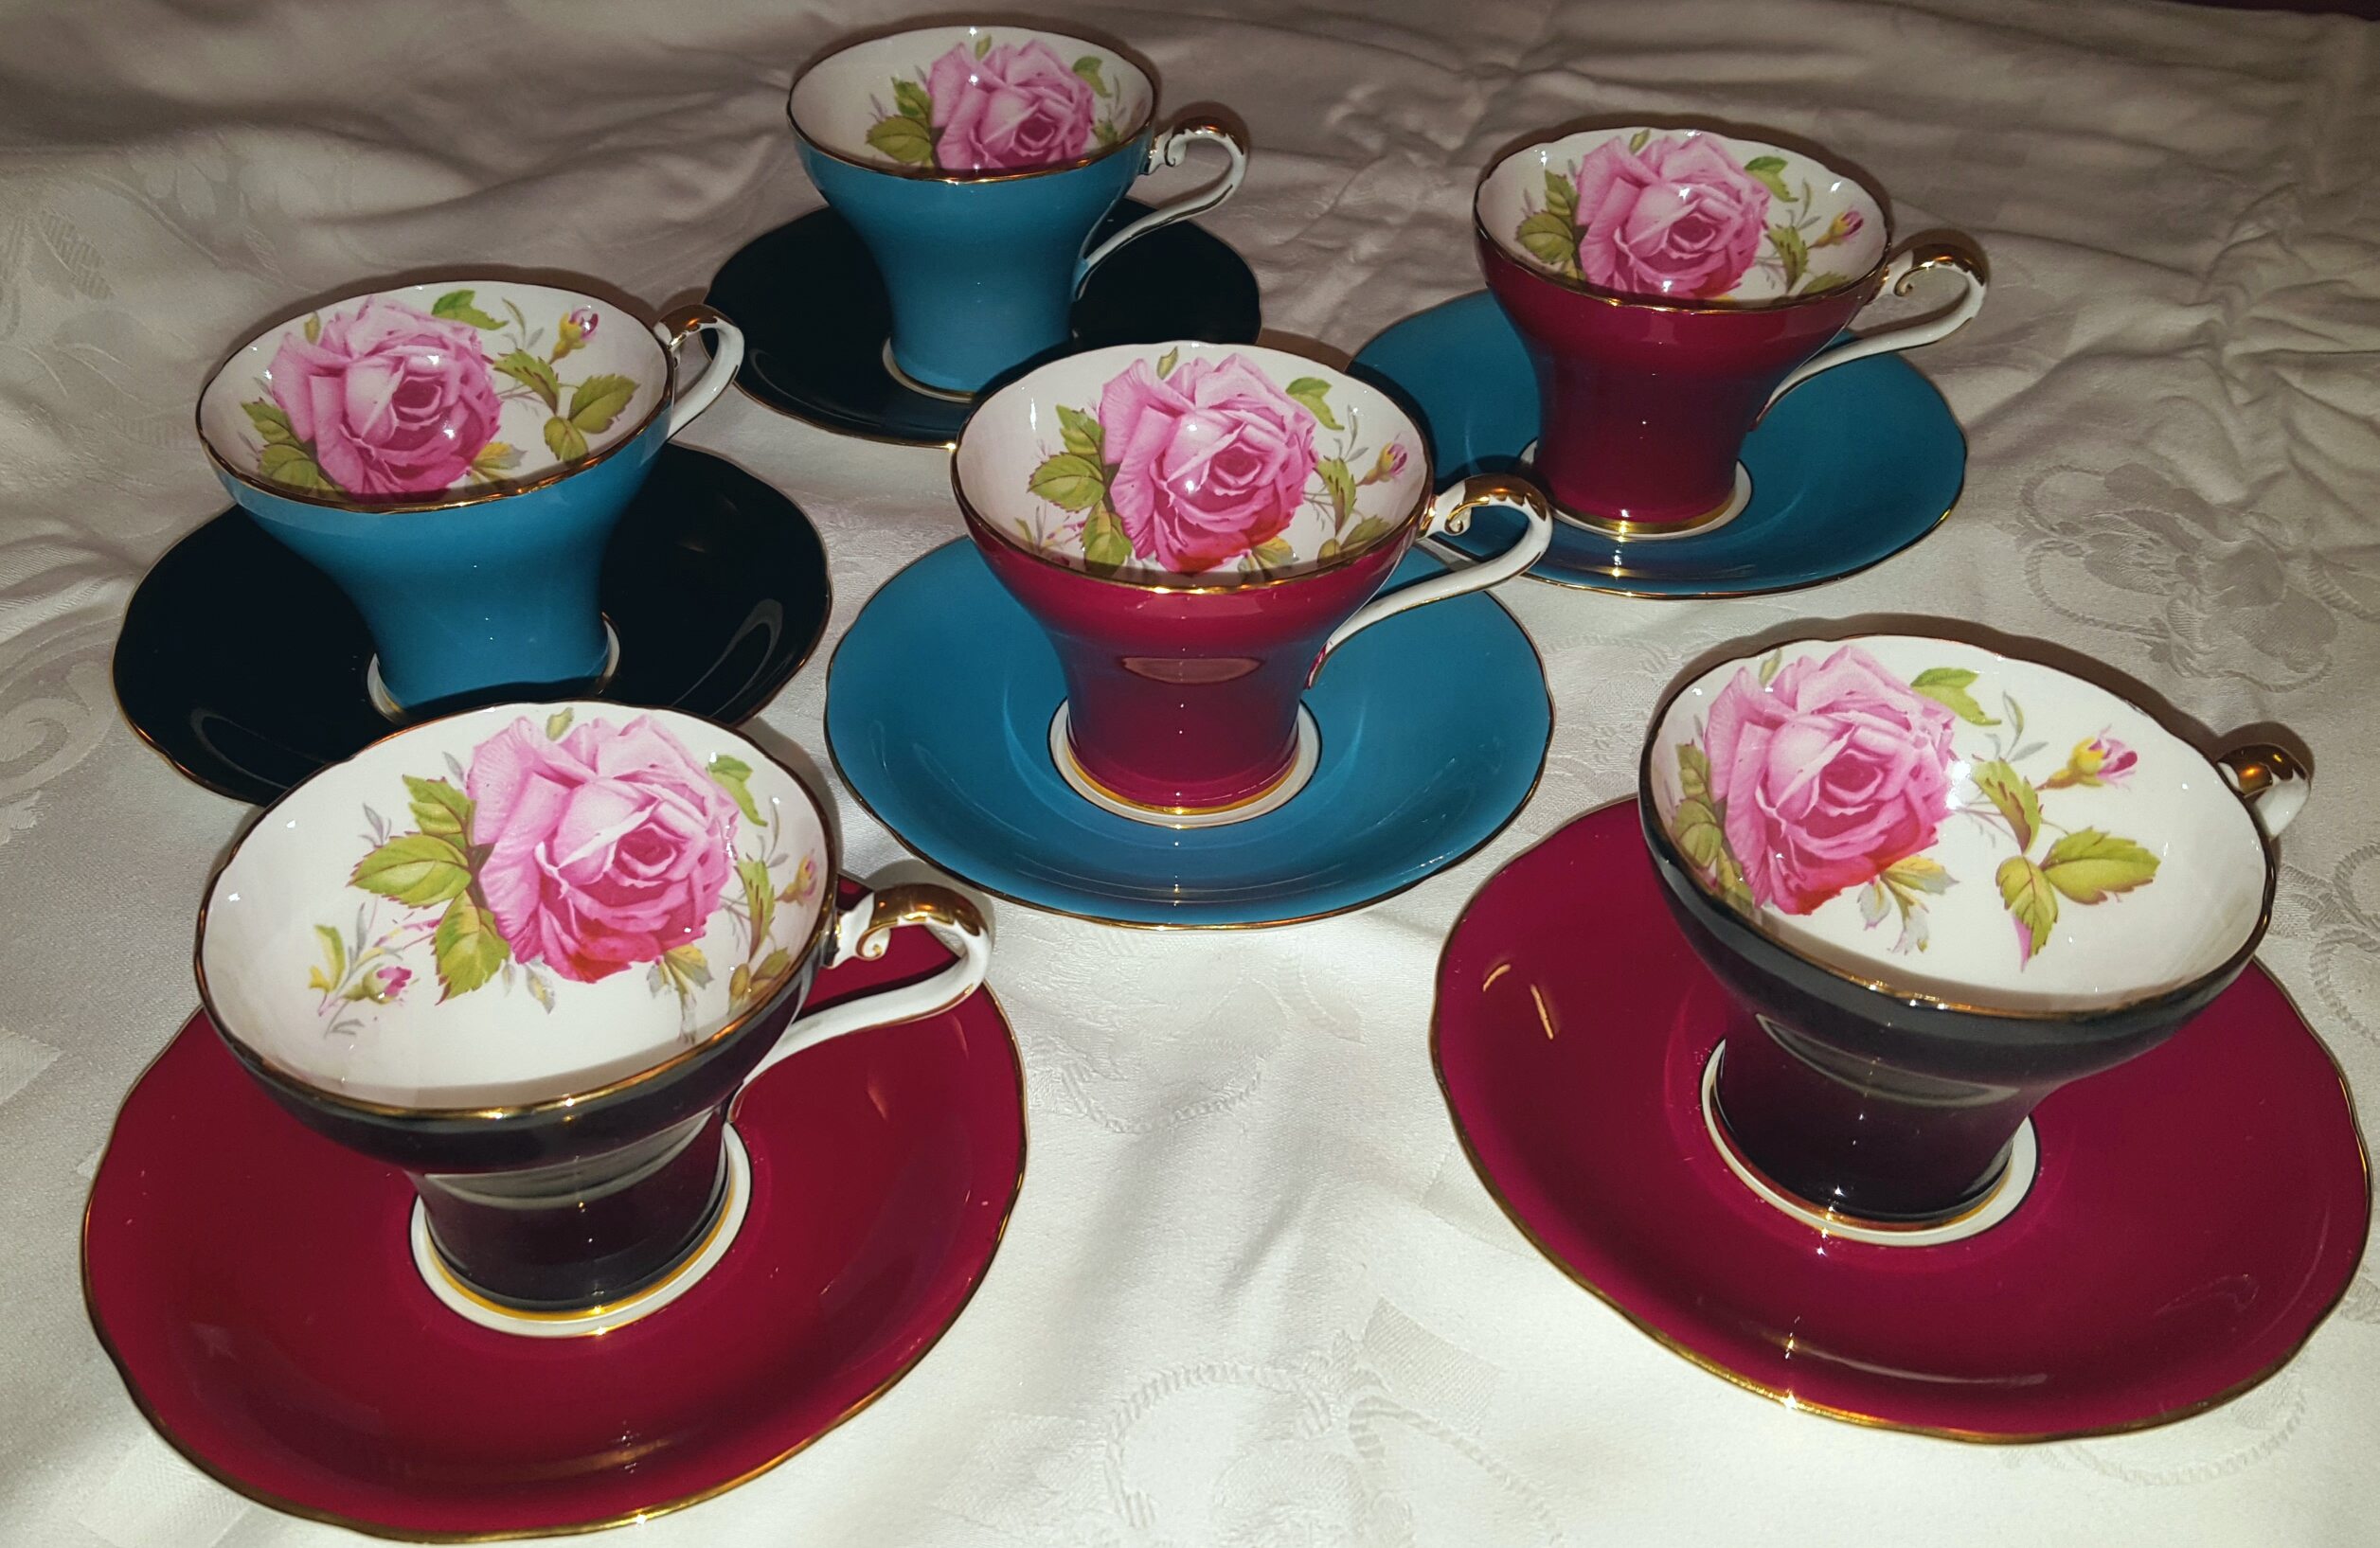 Lot 48 - Set of 6 Multi Coloured Aynsley Tea Cups & Saucers